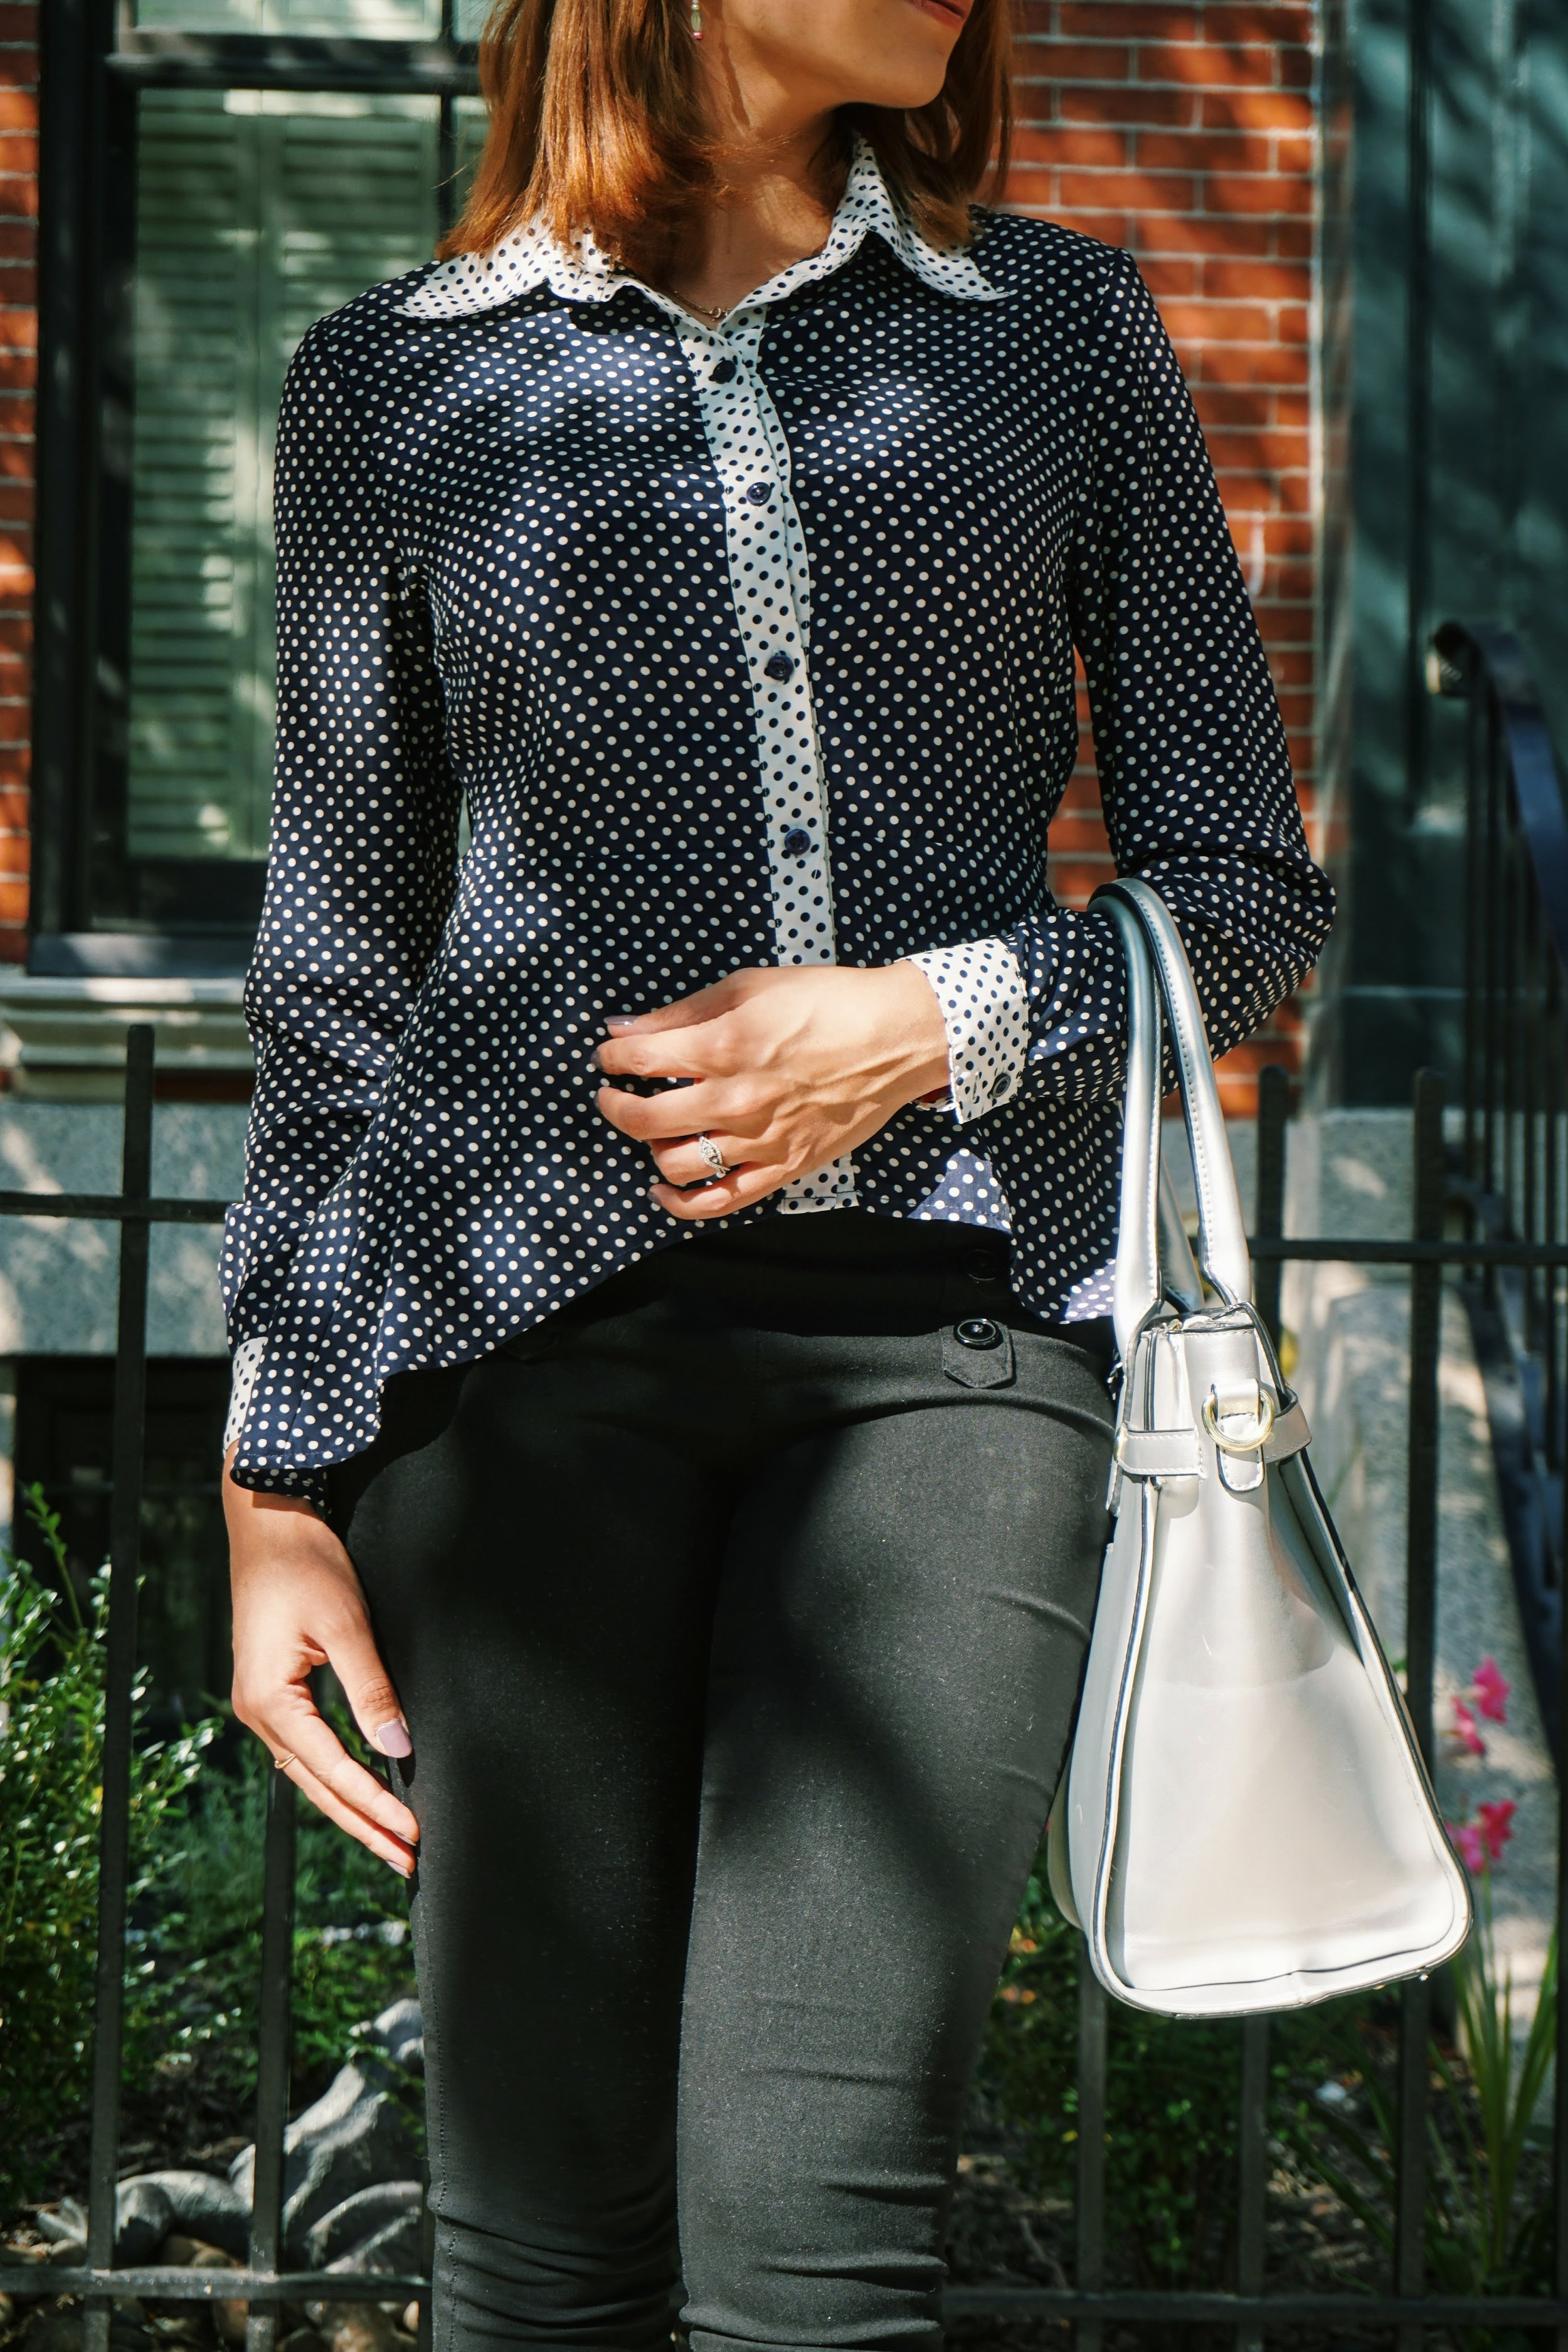 A close-up of a business casual outfit: polka dot blouse, black pants, silver bag.